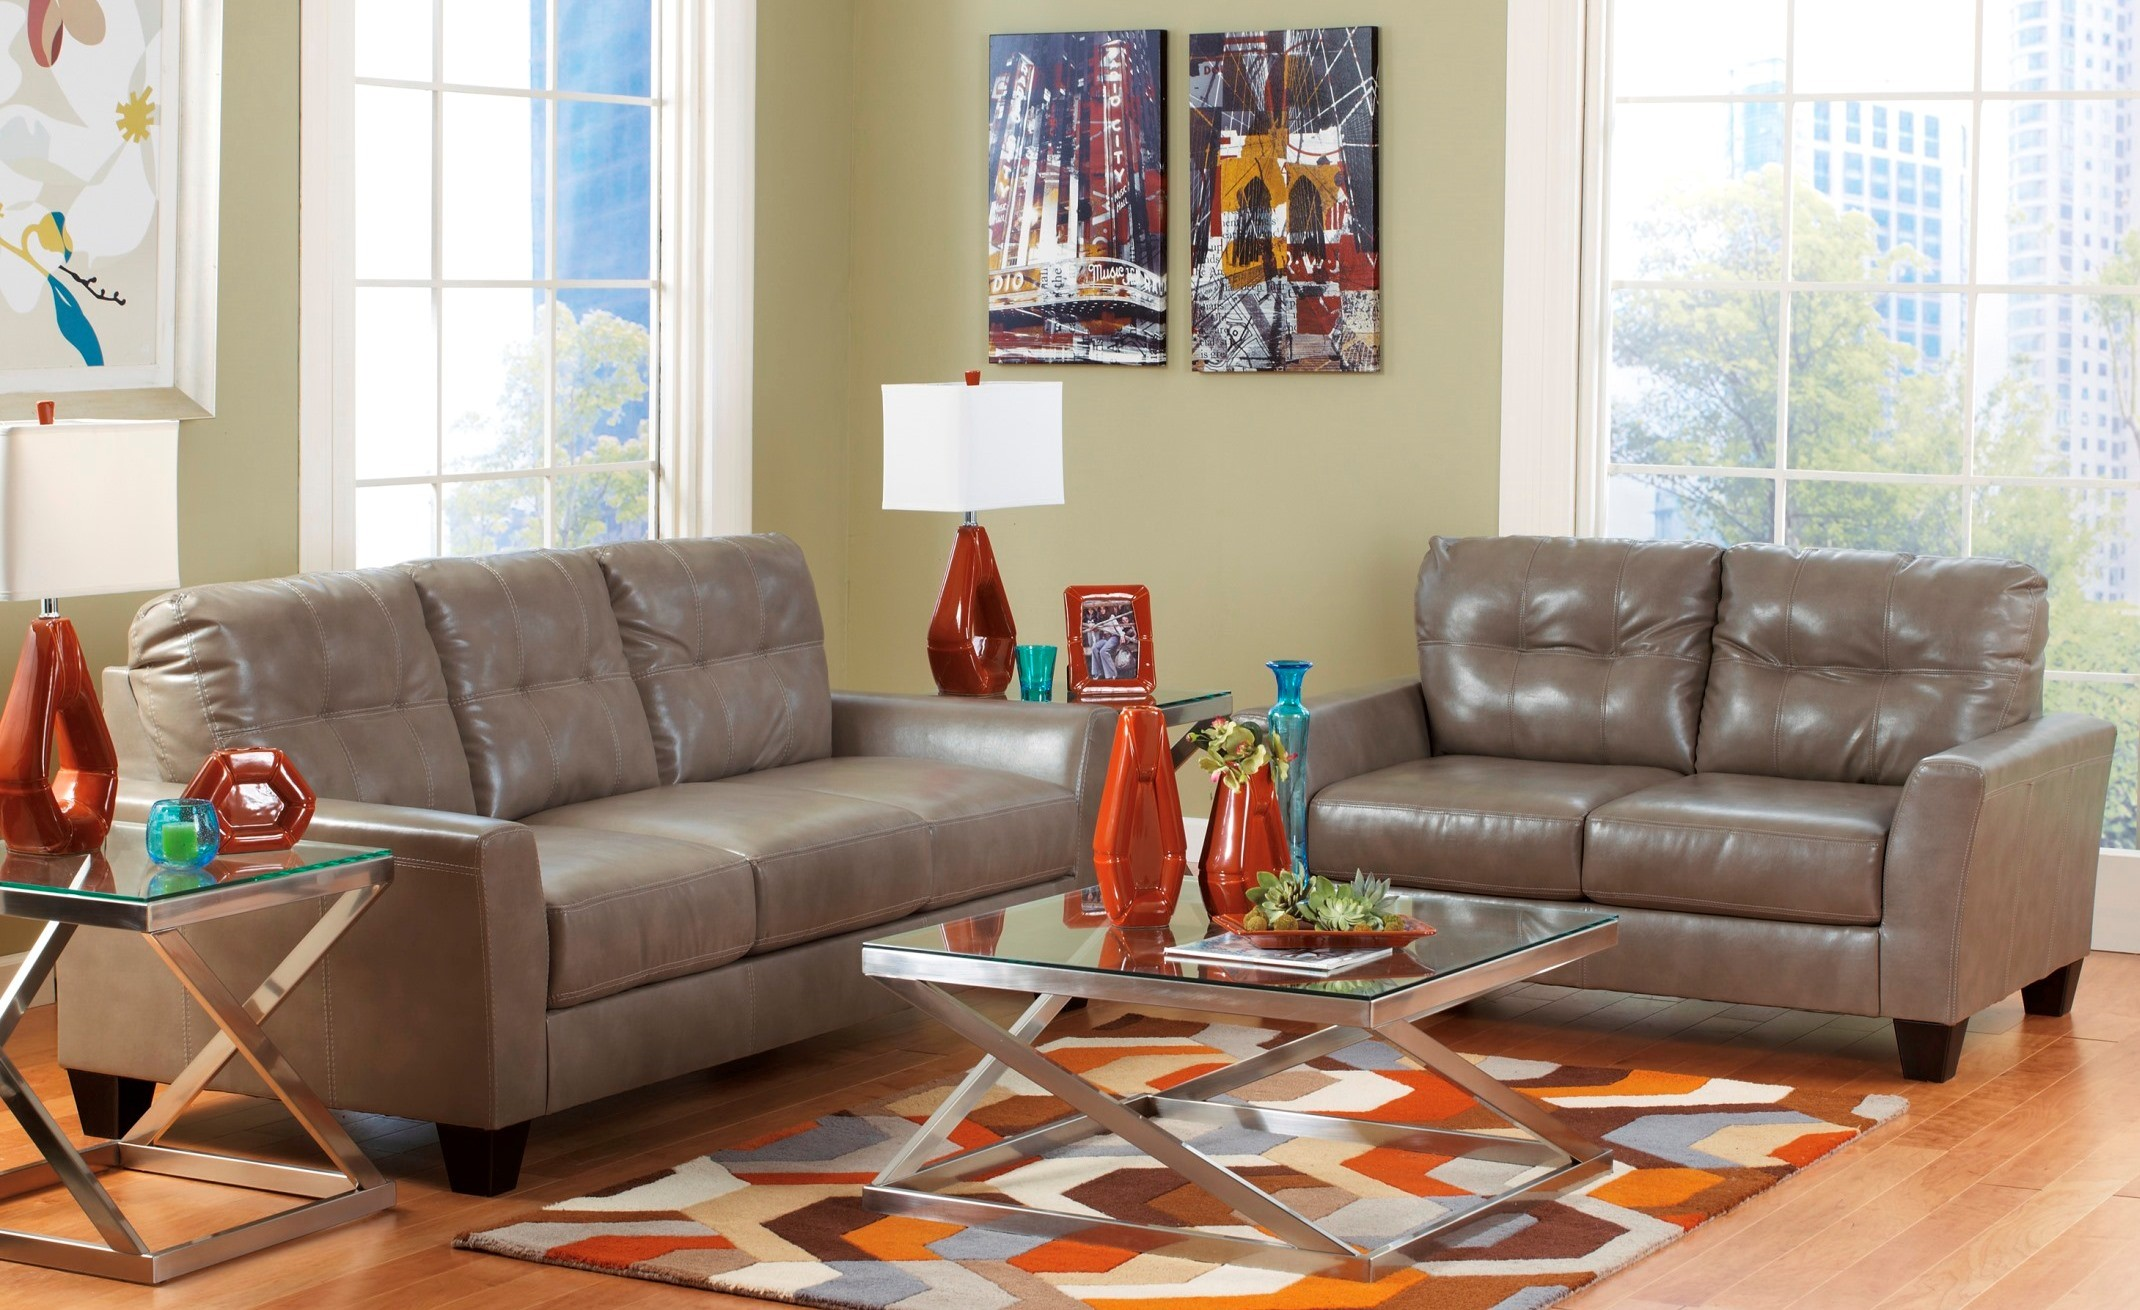 Paulie DuraBlend Quarry Living Room Set From Ashley 27001 38 35 Coleman F